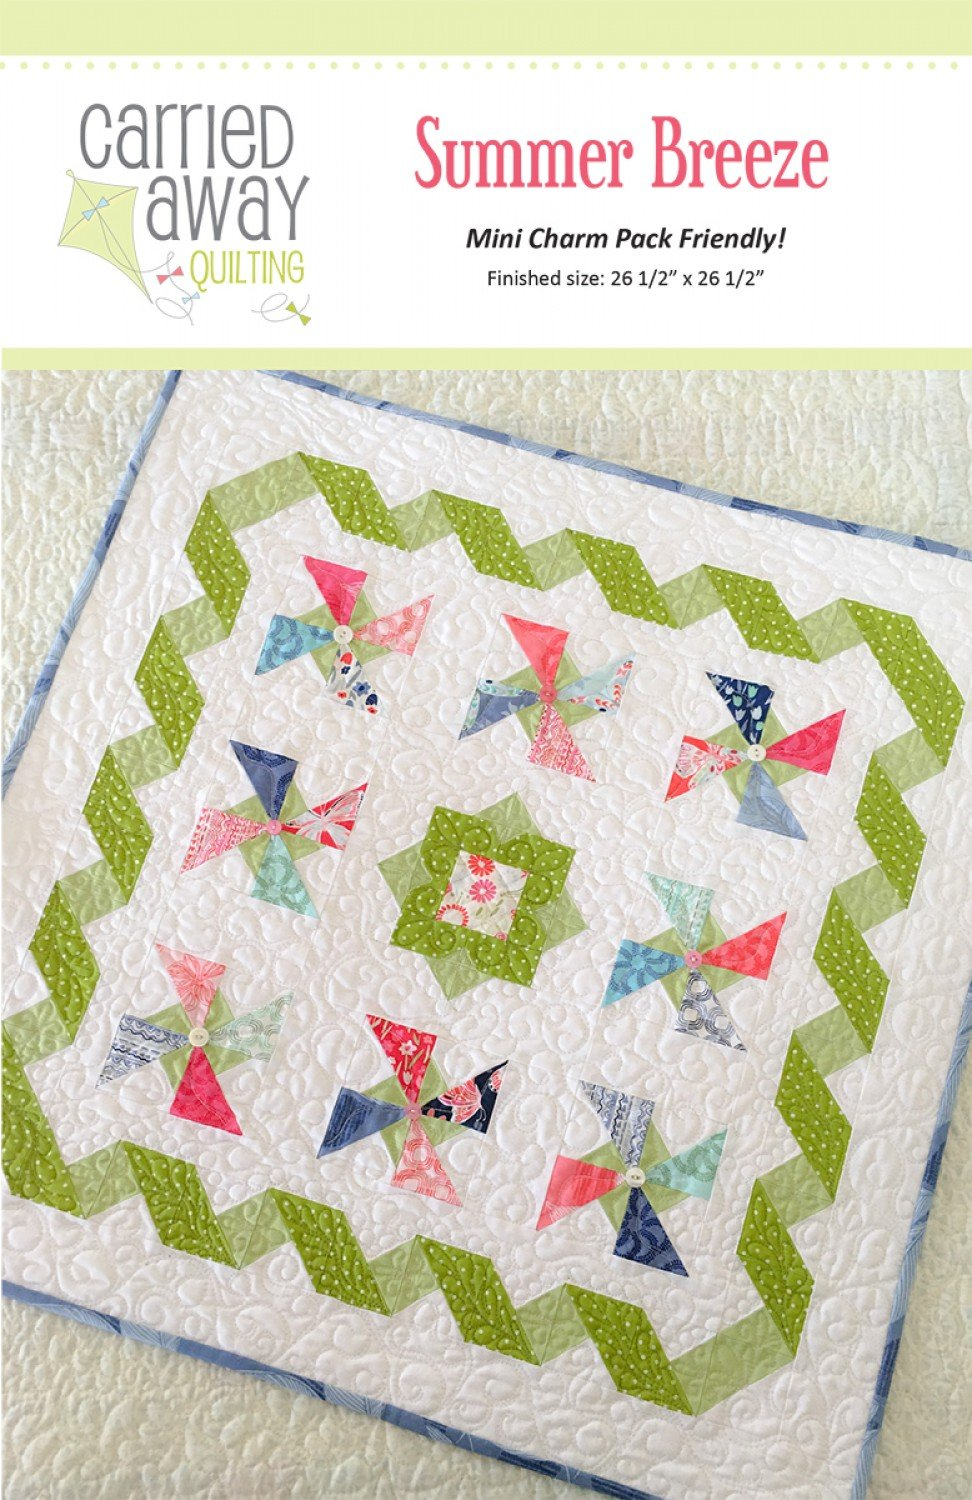 Summer Breeze By Taunja Kelvington From Carried Away Quilting